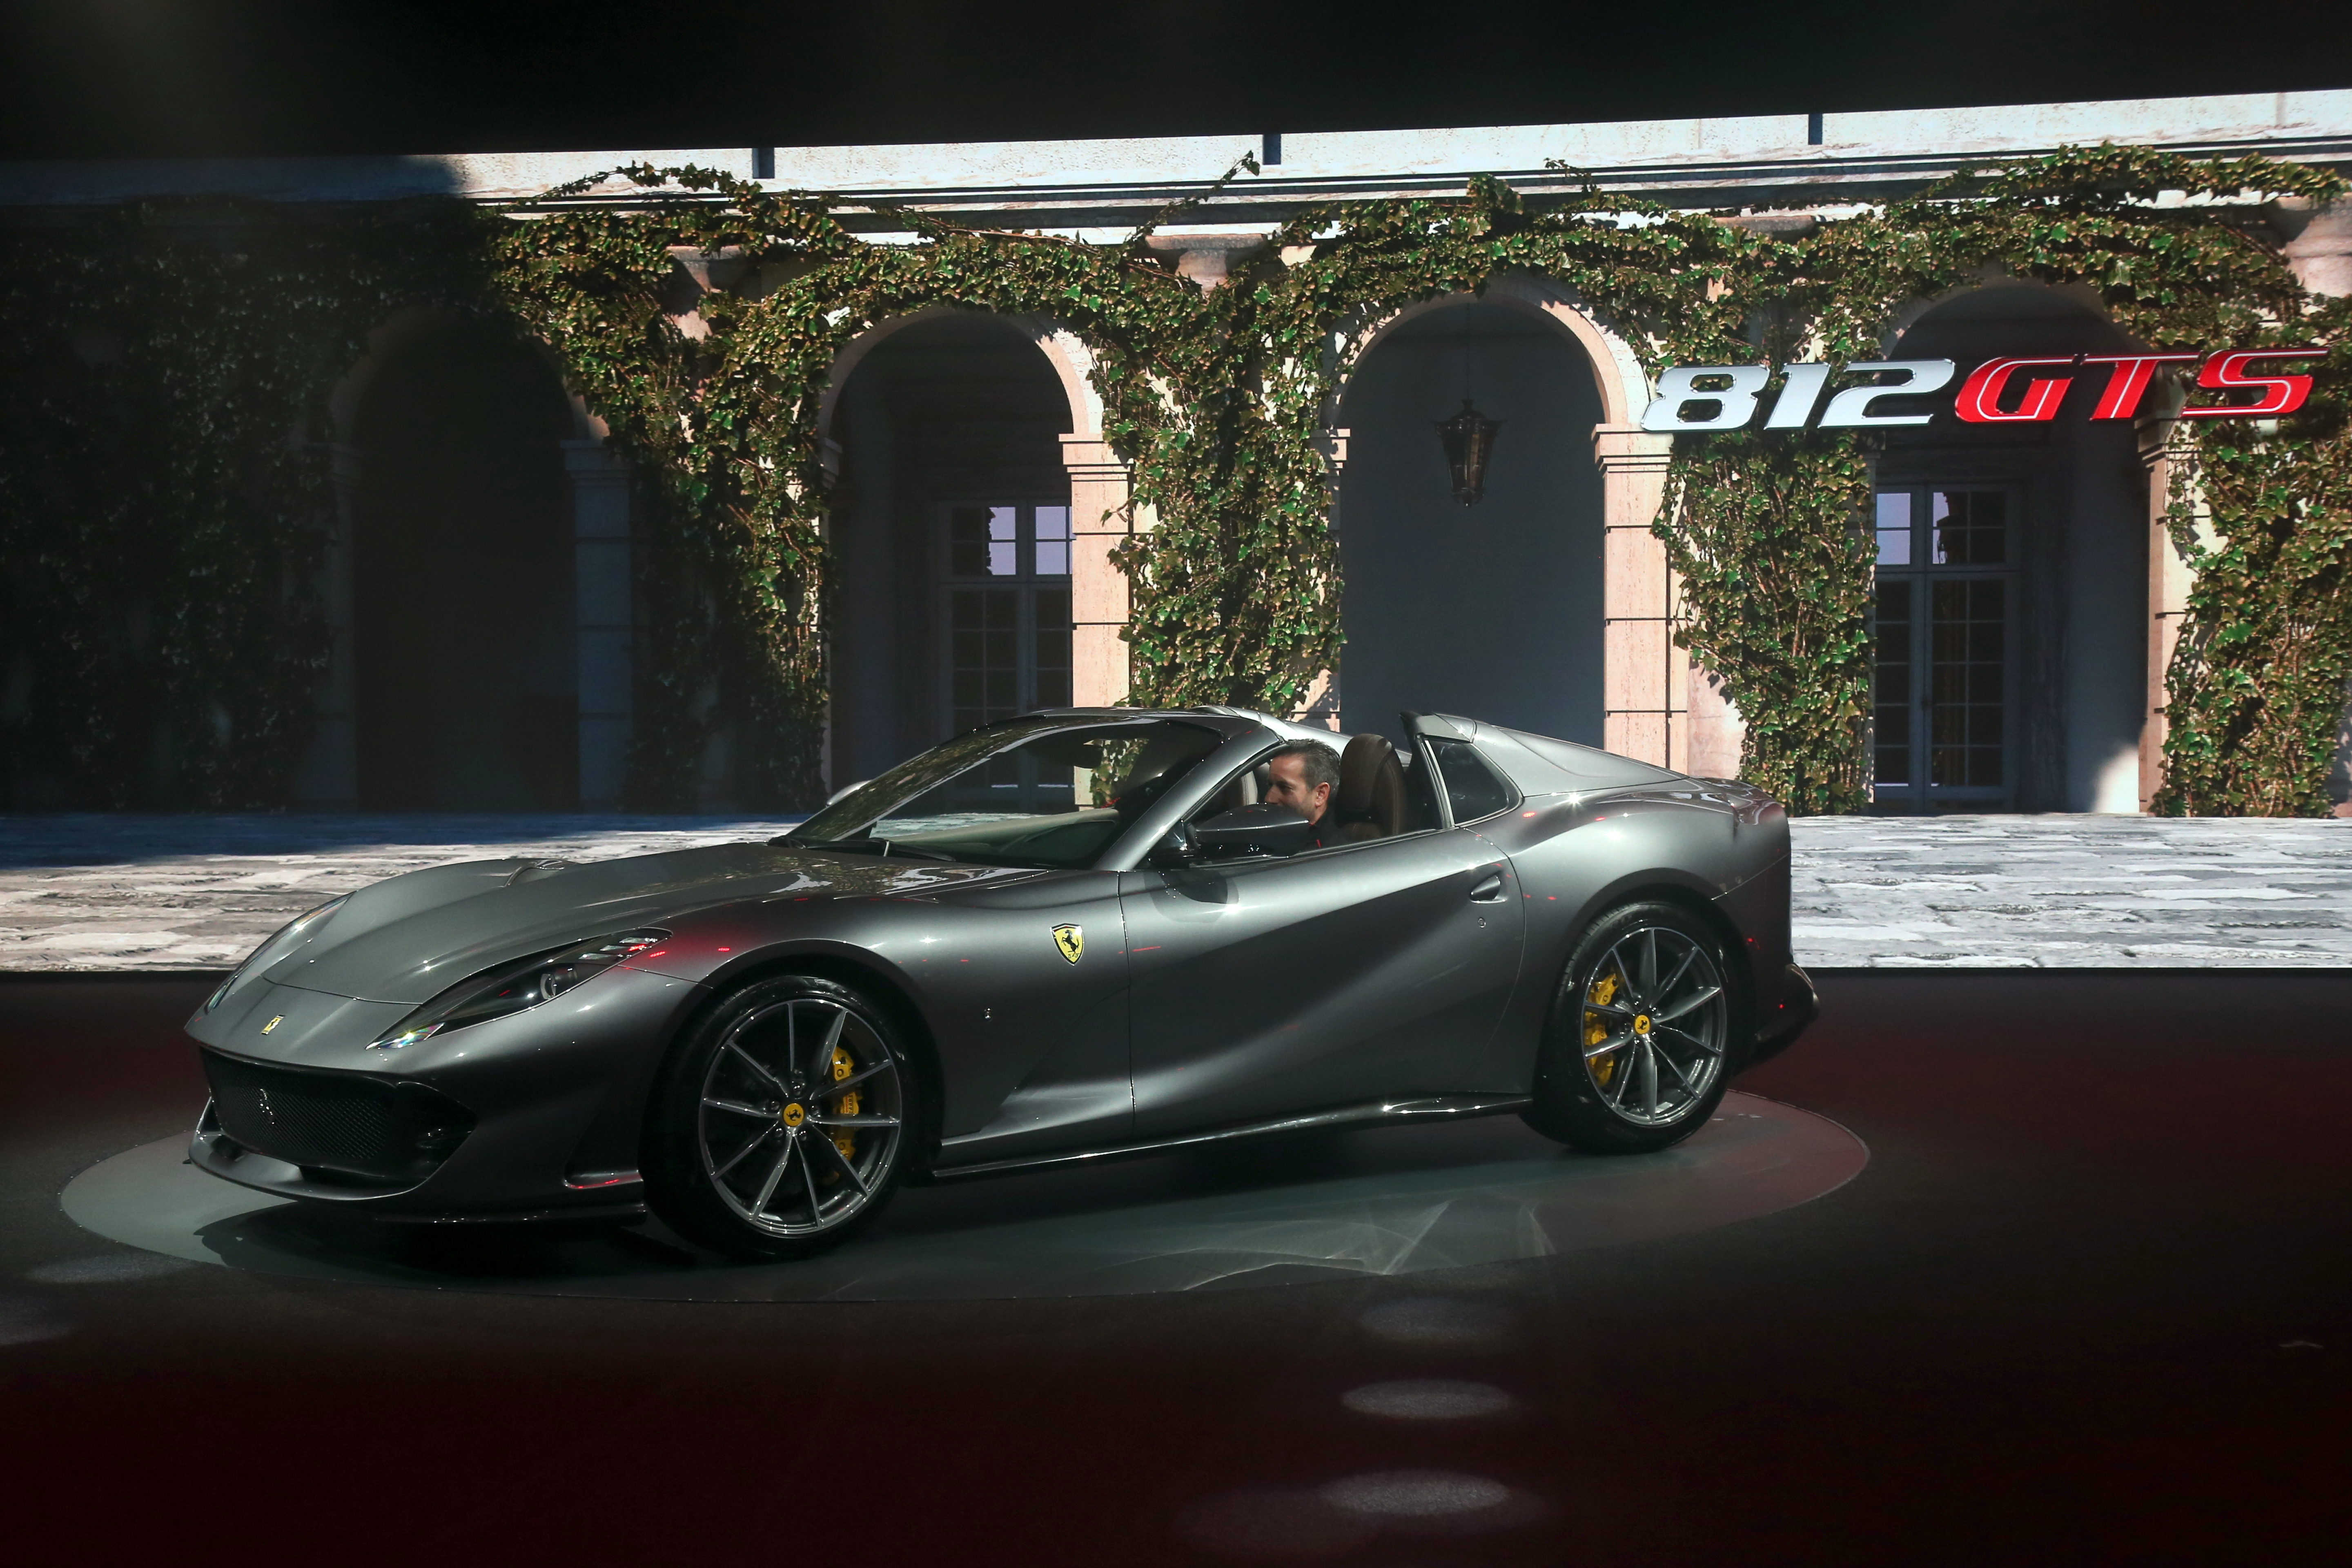 Cool Quirks About The New Ferrari 812 Gts Top Speed